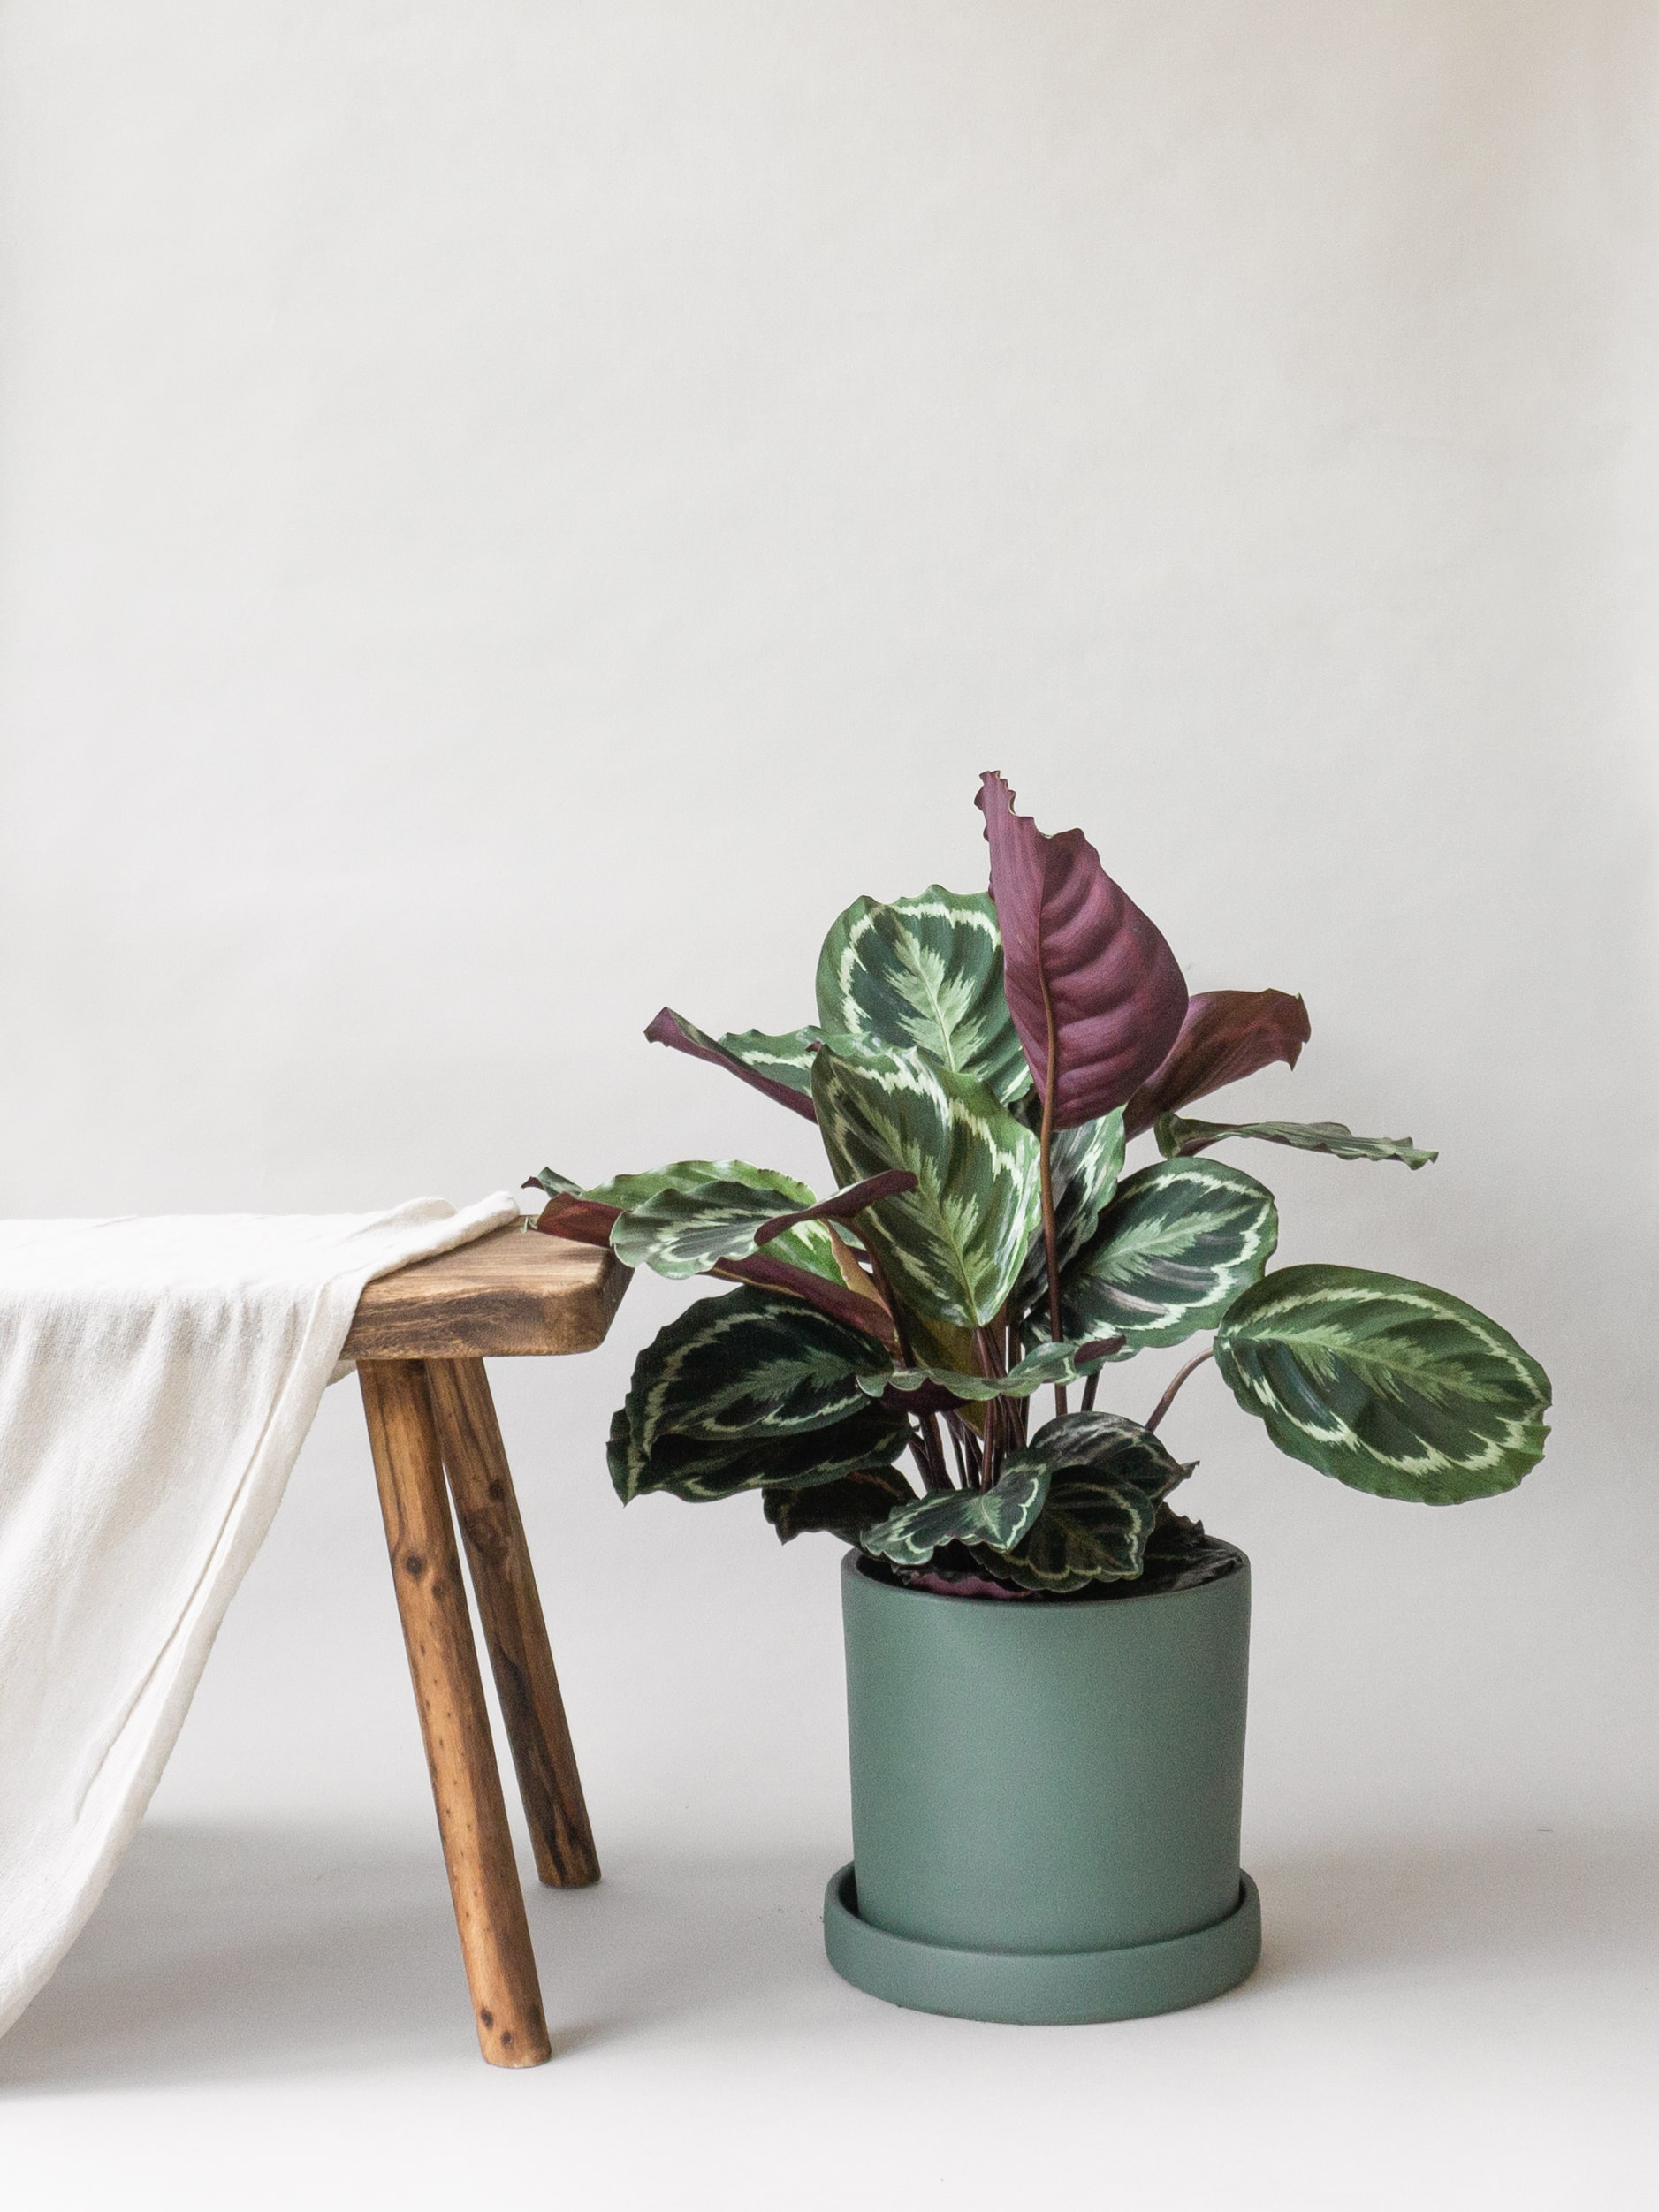 Plant care tips by Leaf Envy Calathea light, watering, humidity, fertiliser requirements